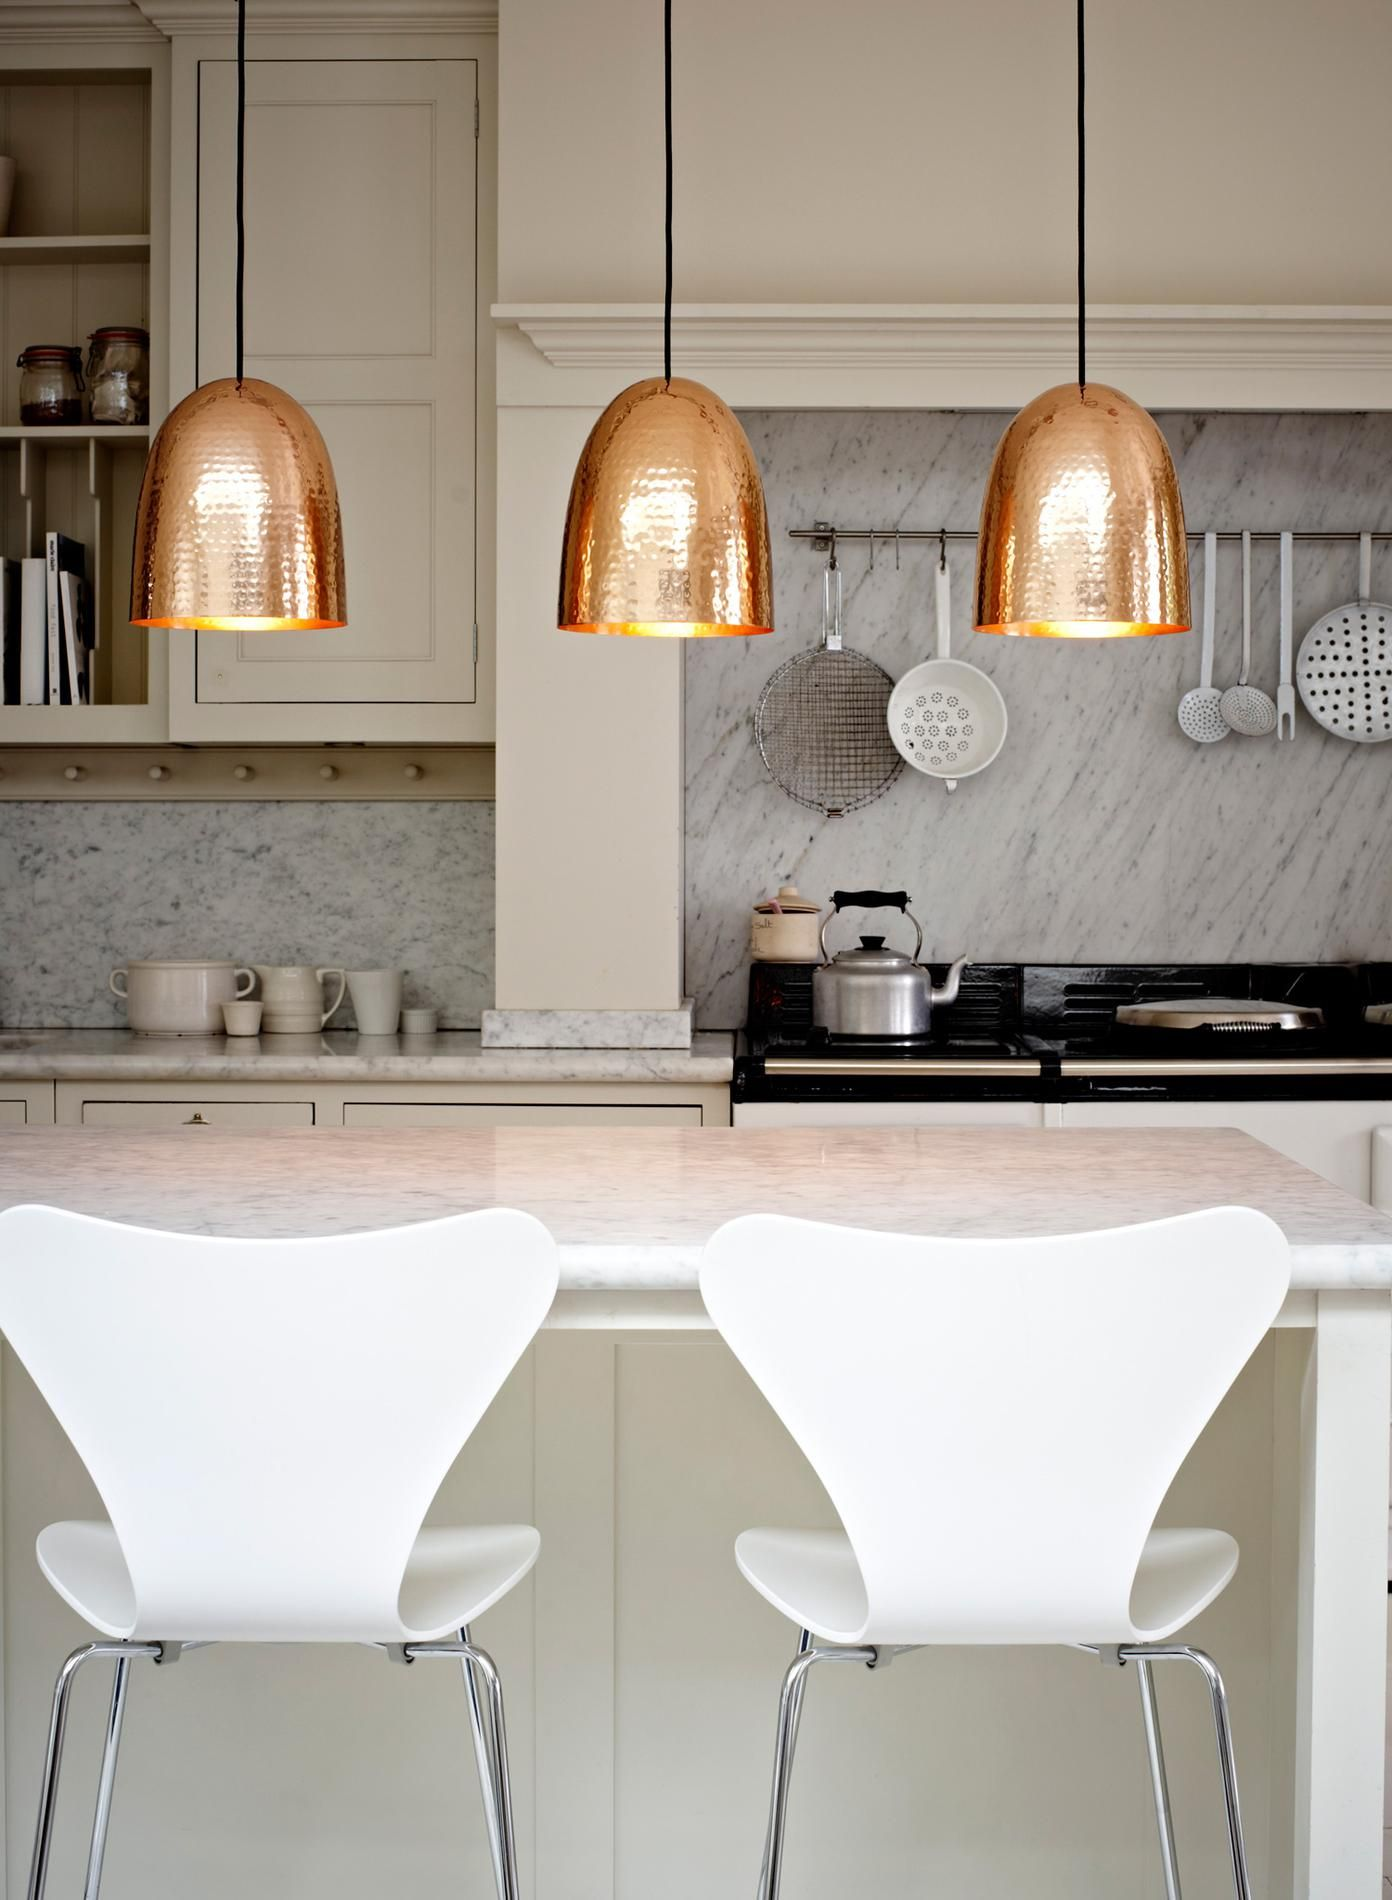 Examples Of Copper Pendant Lighting For Your Home - Gold kitchen pendant lights